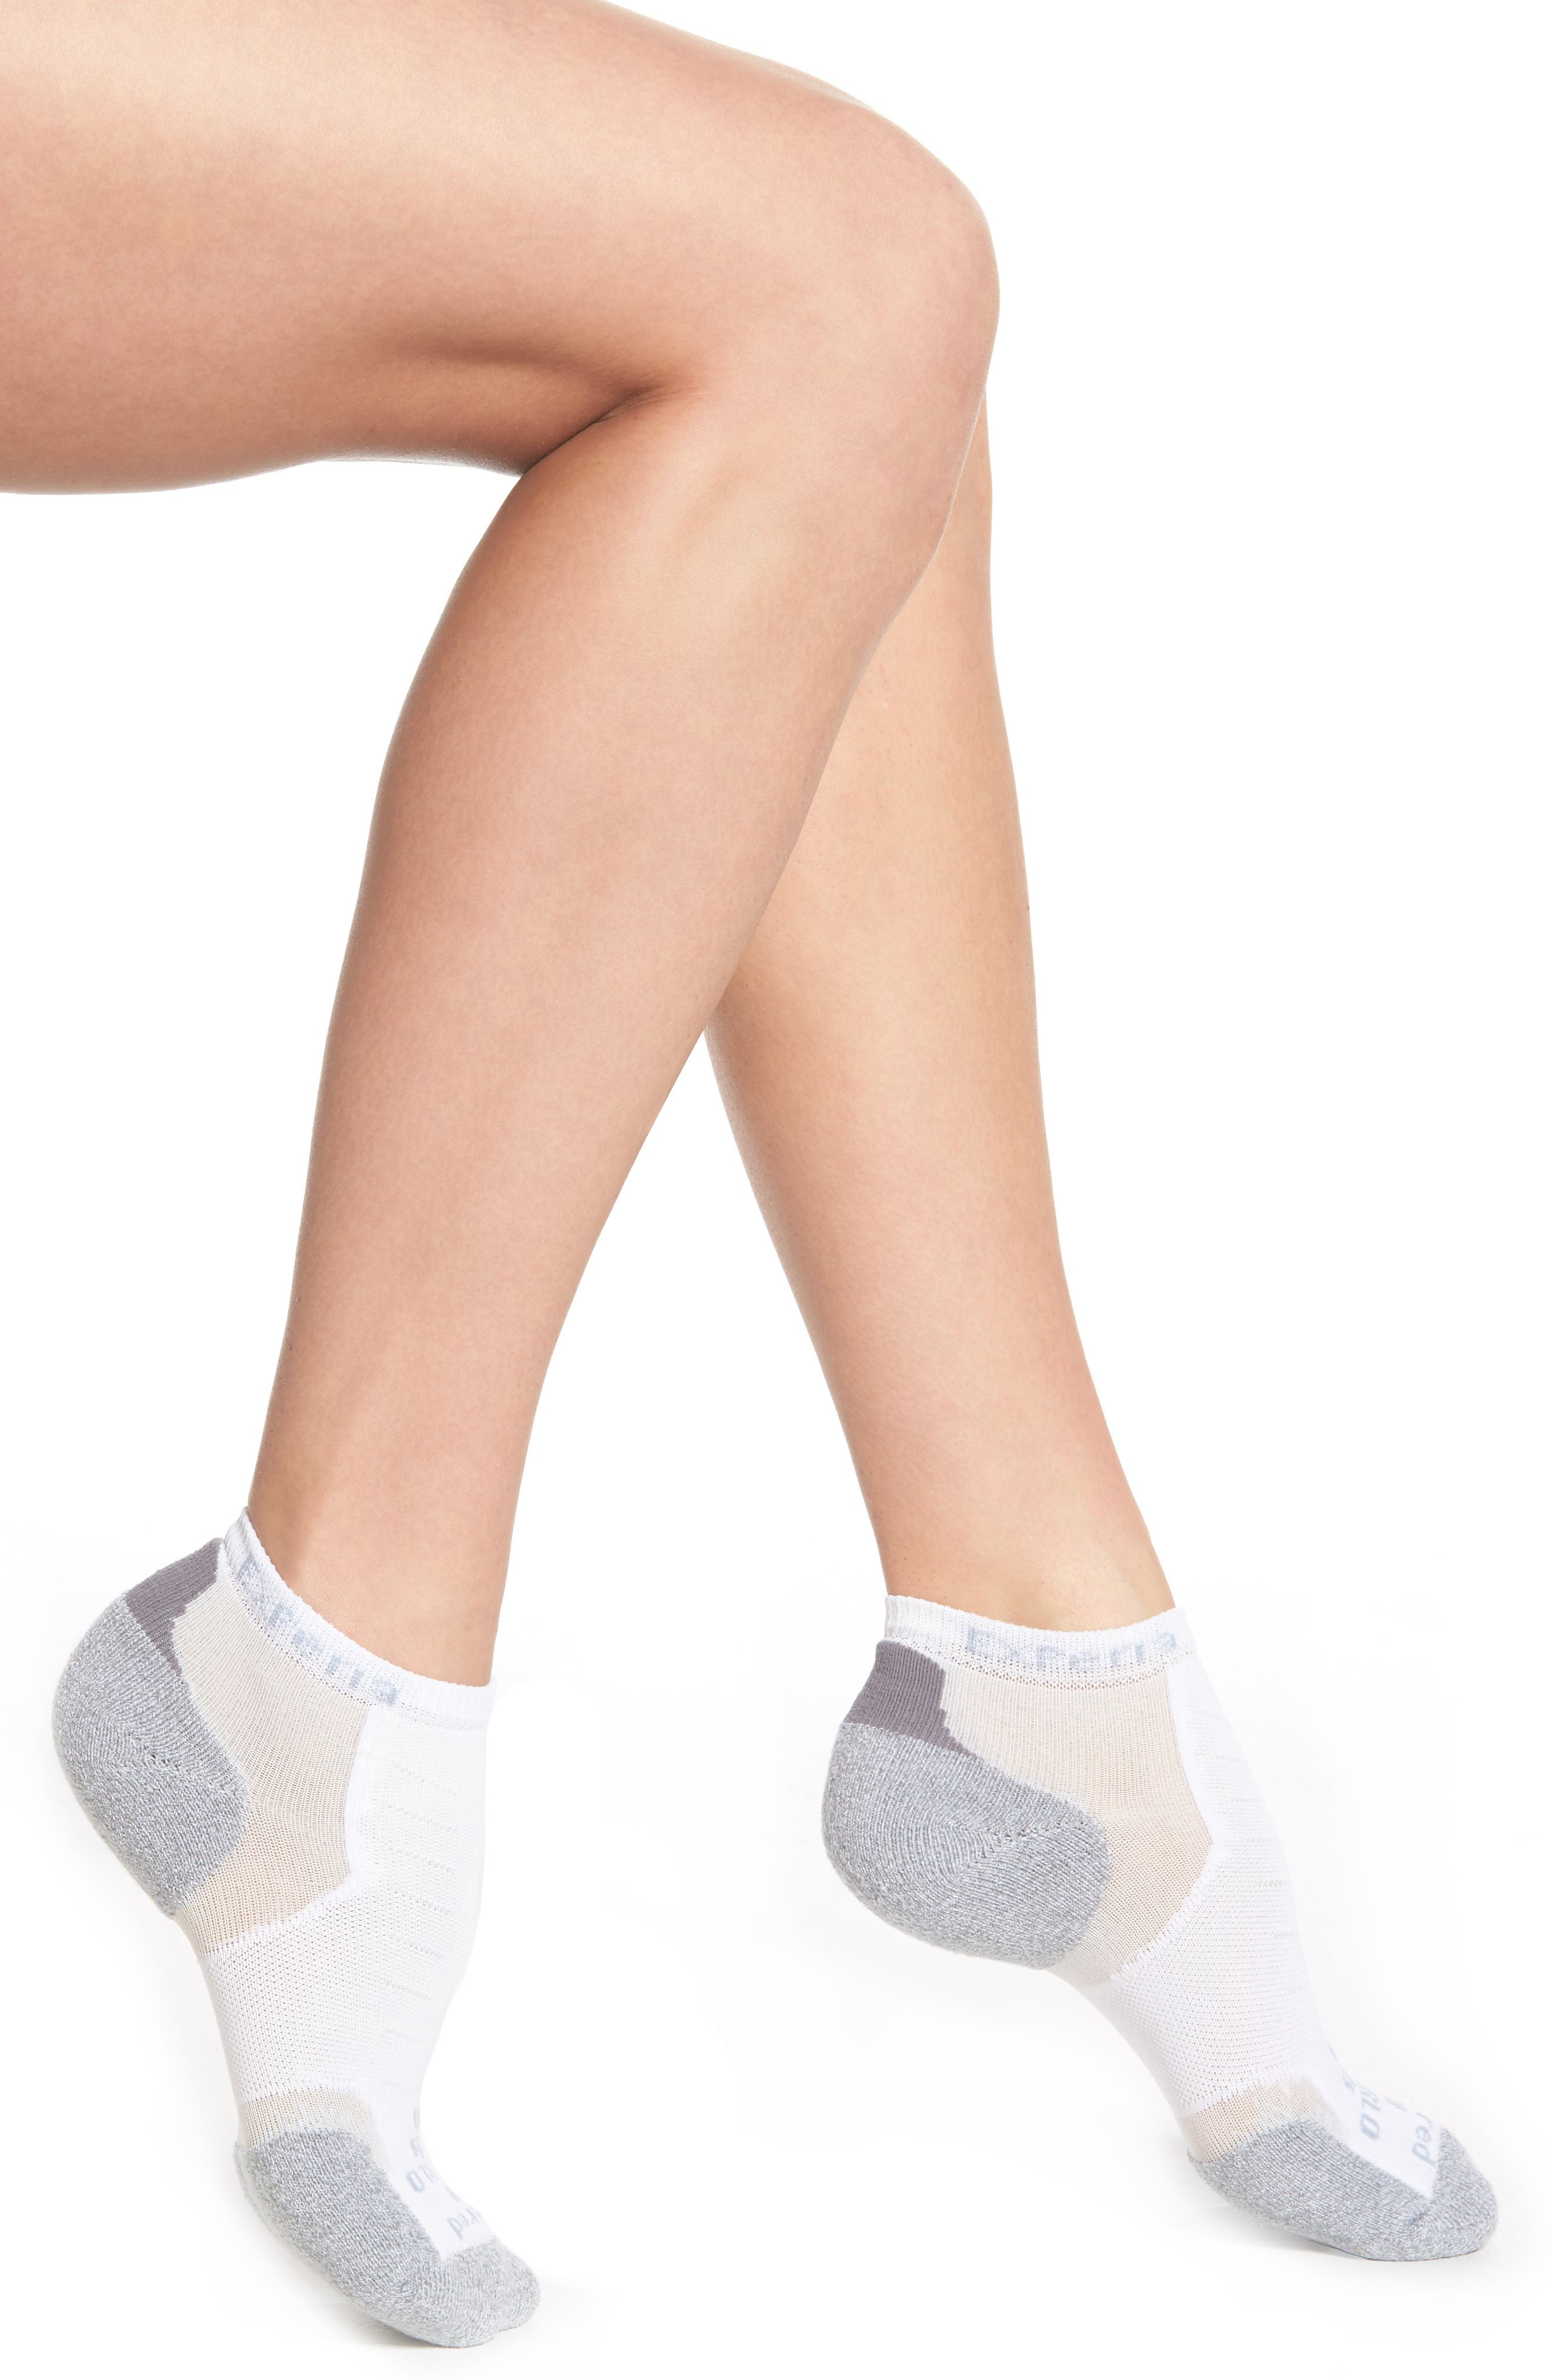 Thorlo Experia® Thin Cushion Performance Socks